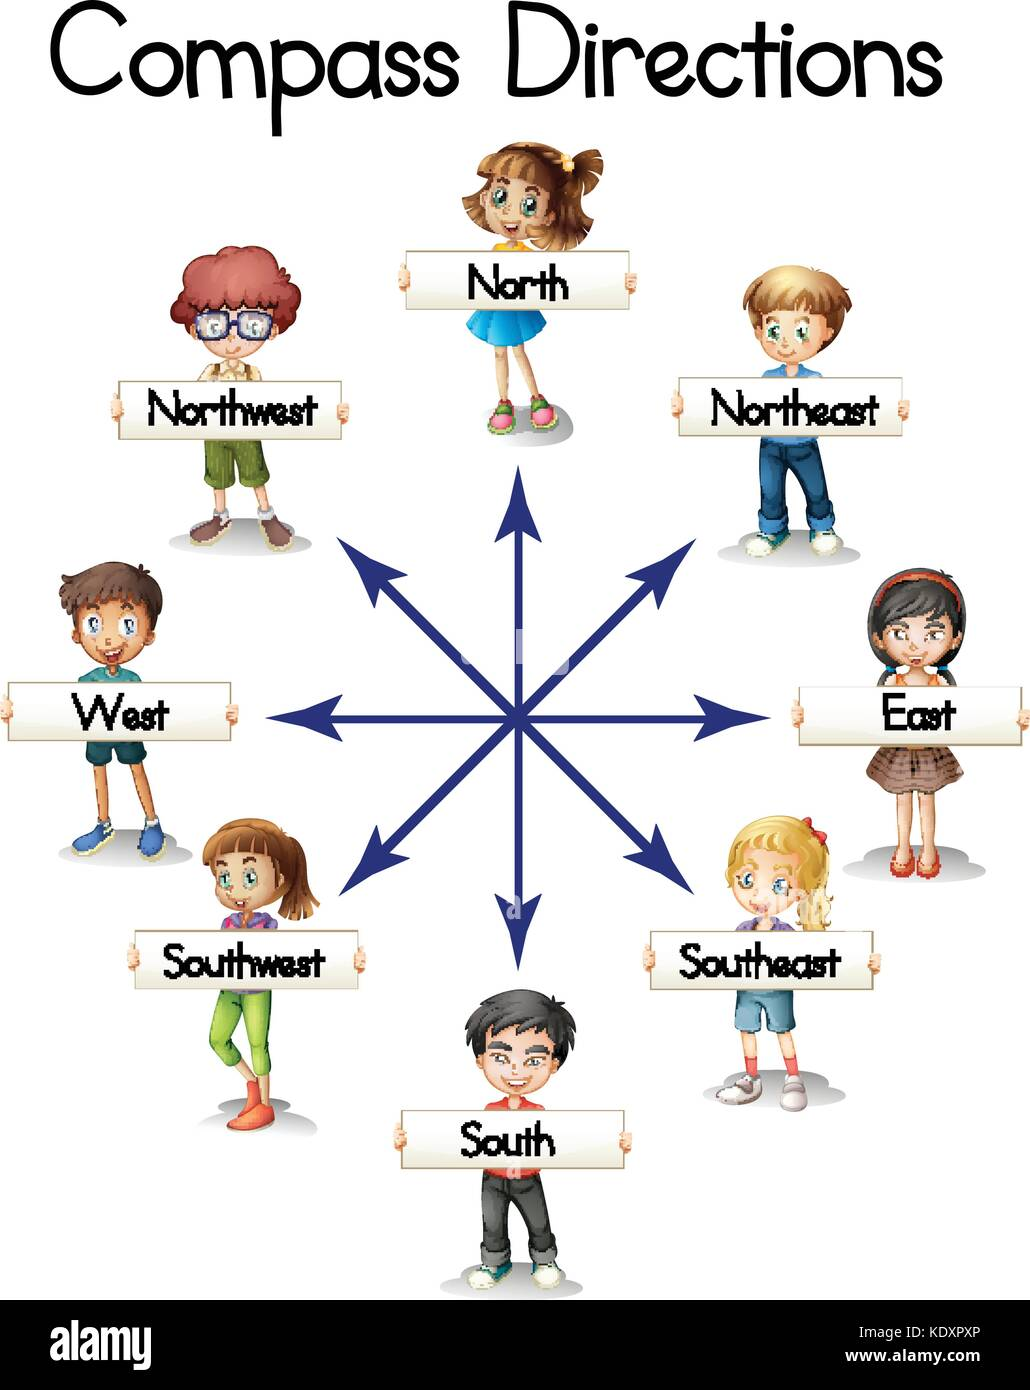 Compass directions with children and words illustration - Stock Vector